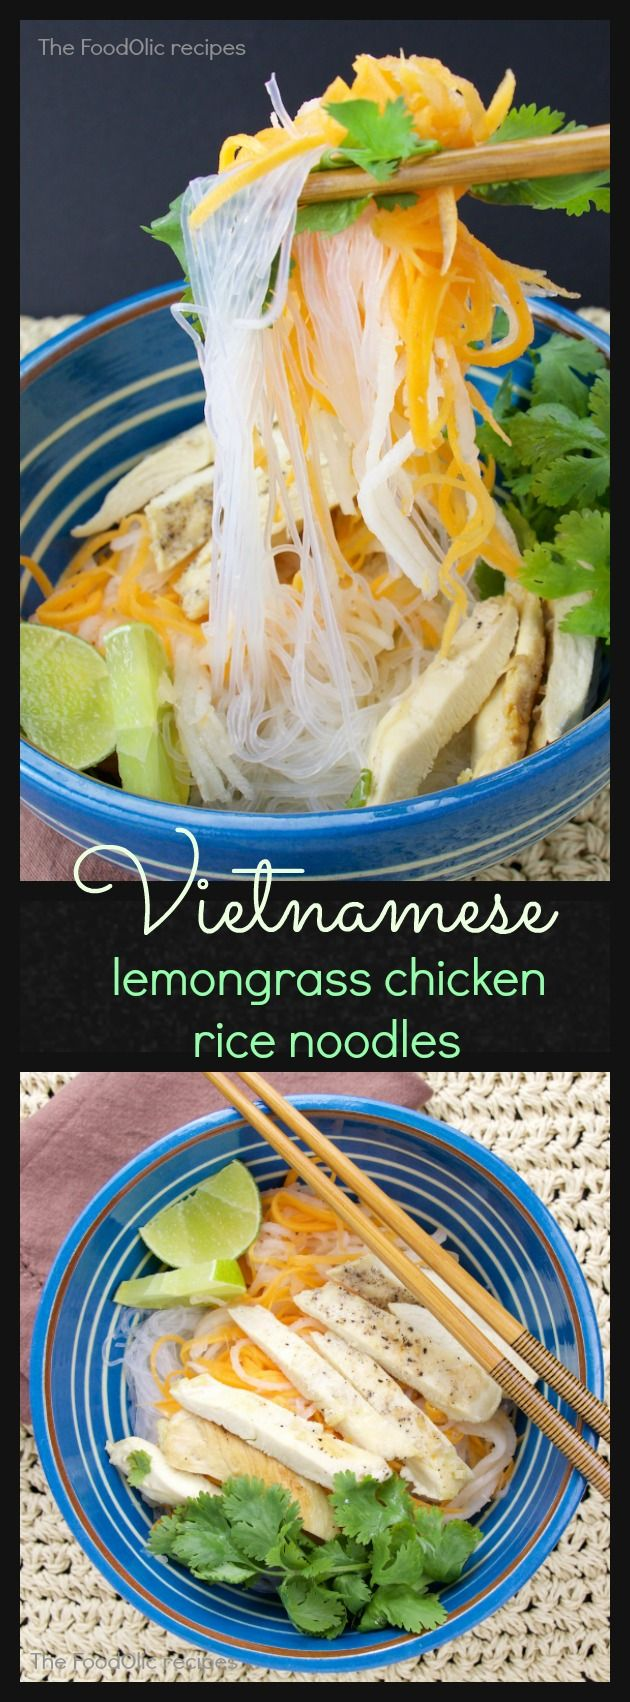 If you are looking for some light, flavored filled dish for this summer, this vietnamese glass noodle with lemongrass chicken strips is a great way to go. Everything in there is packed with flavors, although low in calories. #vietnamese #food #noodles